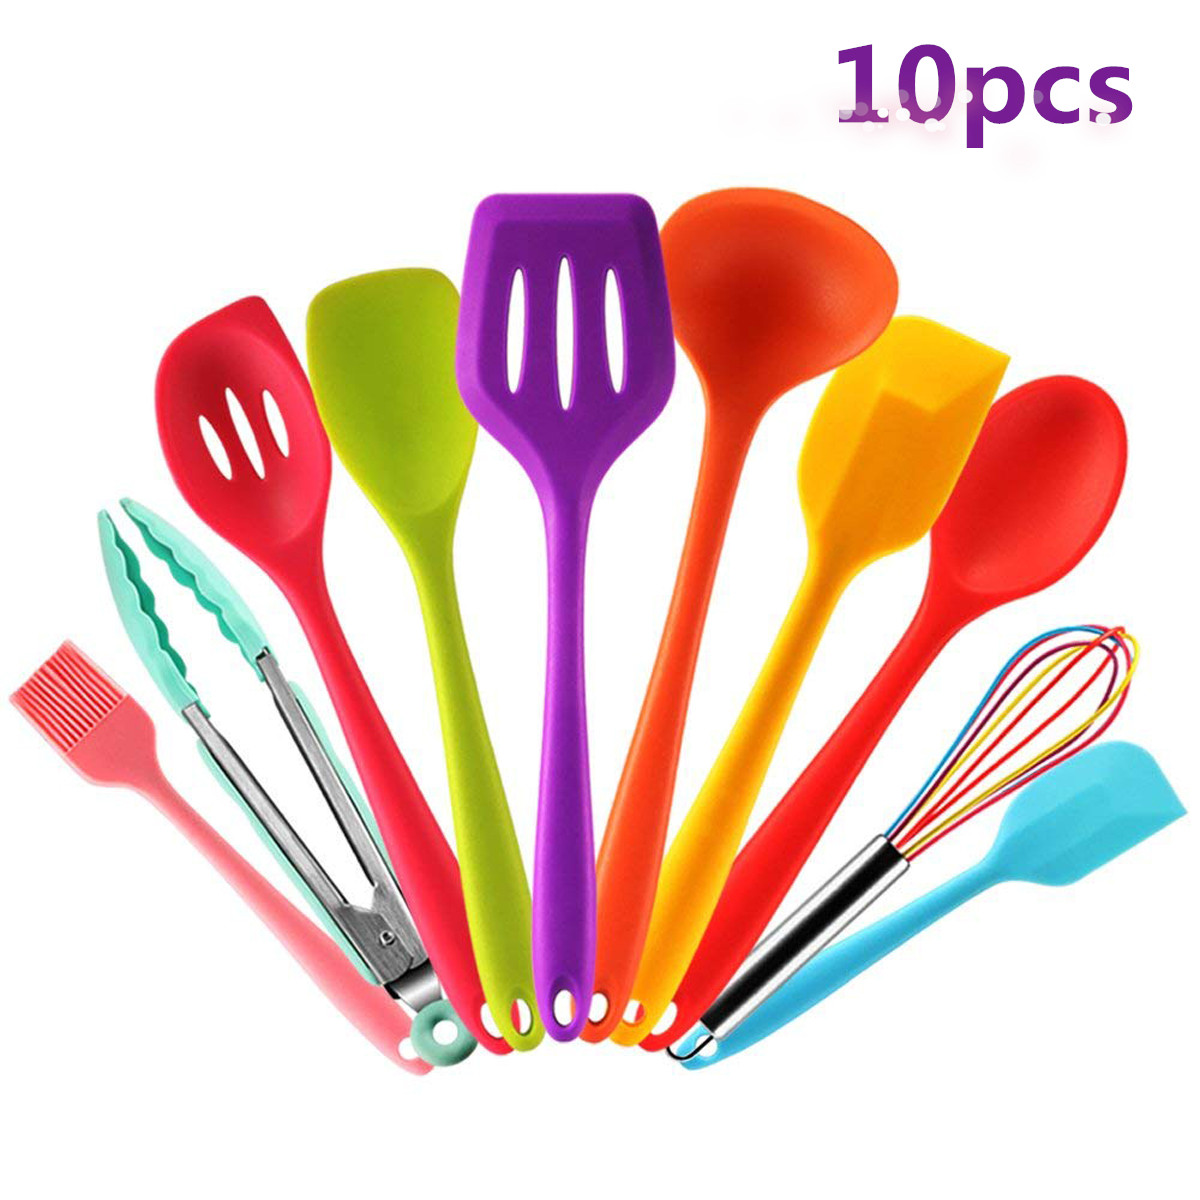 Heat-Resistant Silicone Baking Tool Sets 10 pcs Silicone Utensils Set Safety Health Non-Stick